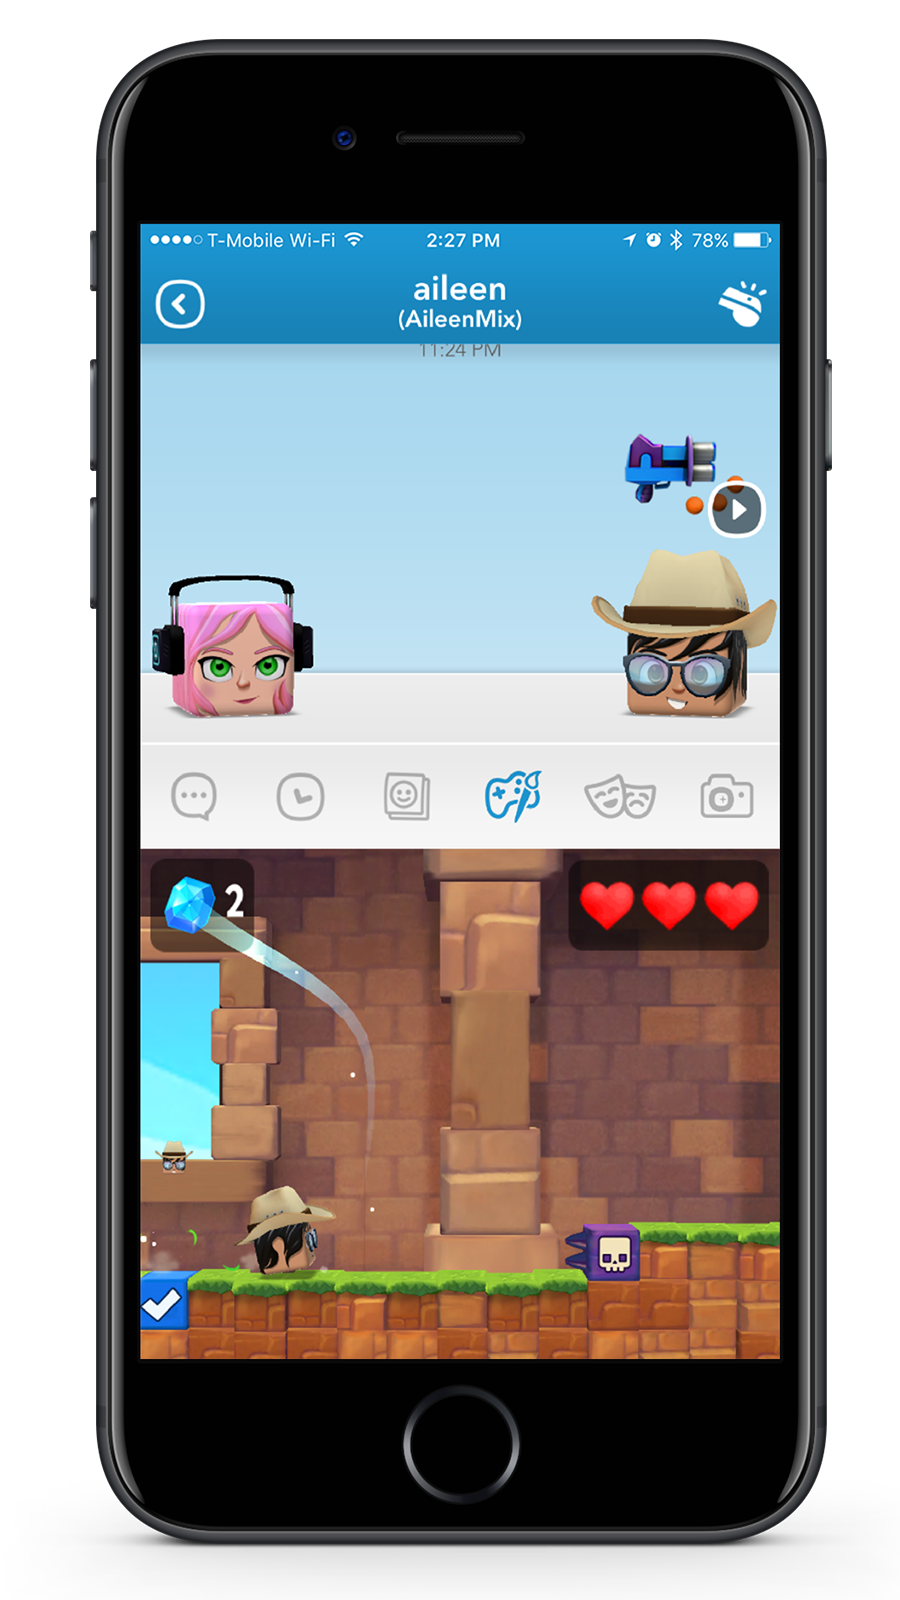 Play in Chat - Users can play 3D mini-games in chat seamlessly without ever leaving their conversation.